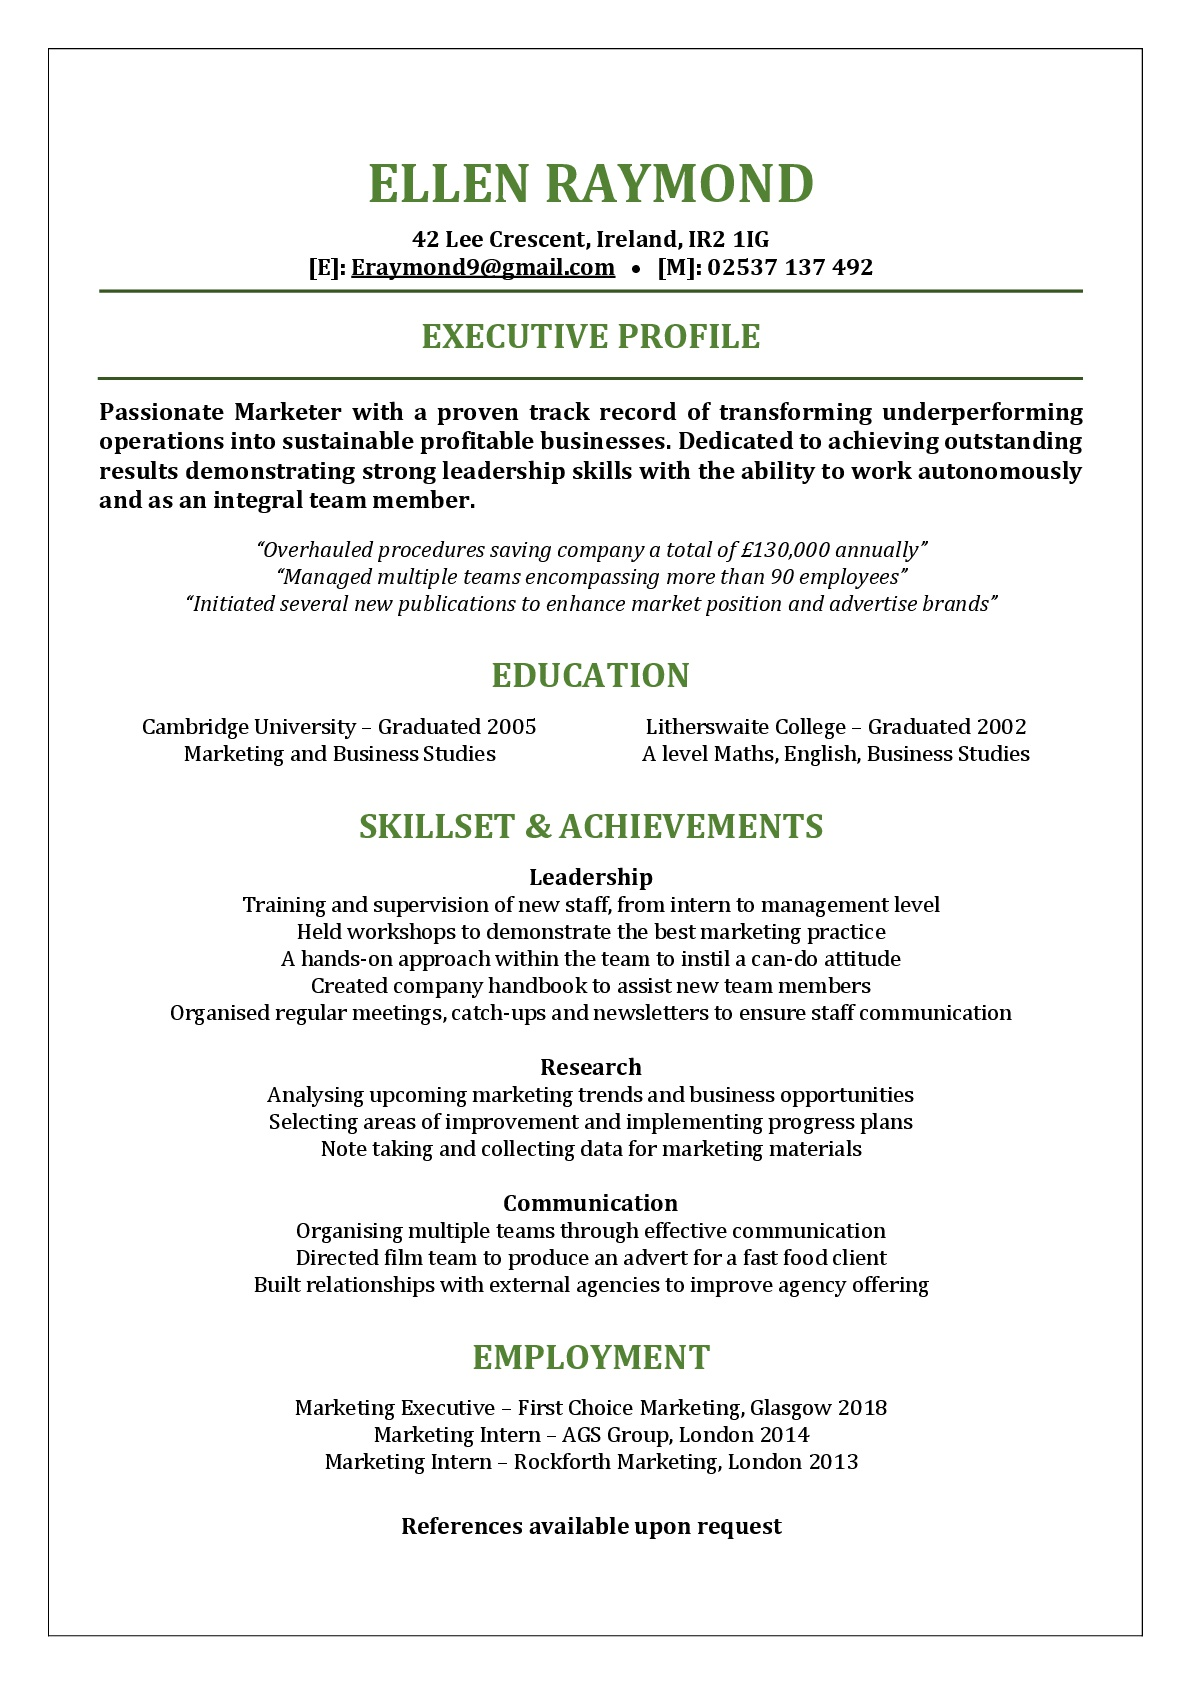 Functional Resume Template Functional Resume Template Image functional resume template|wikiresume.com